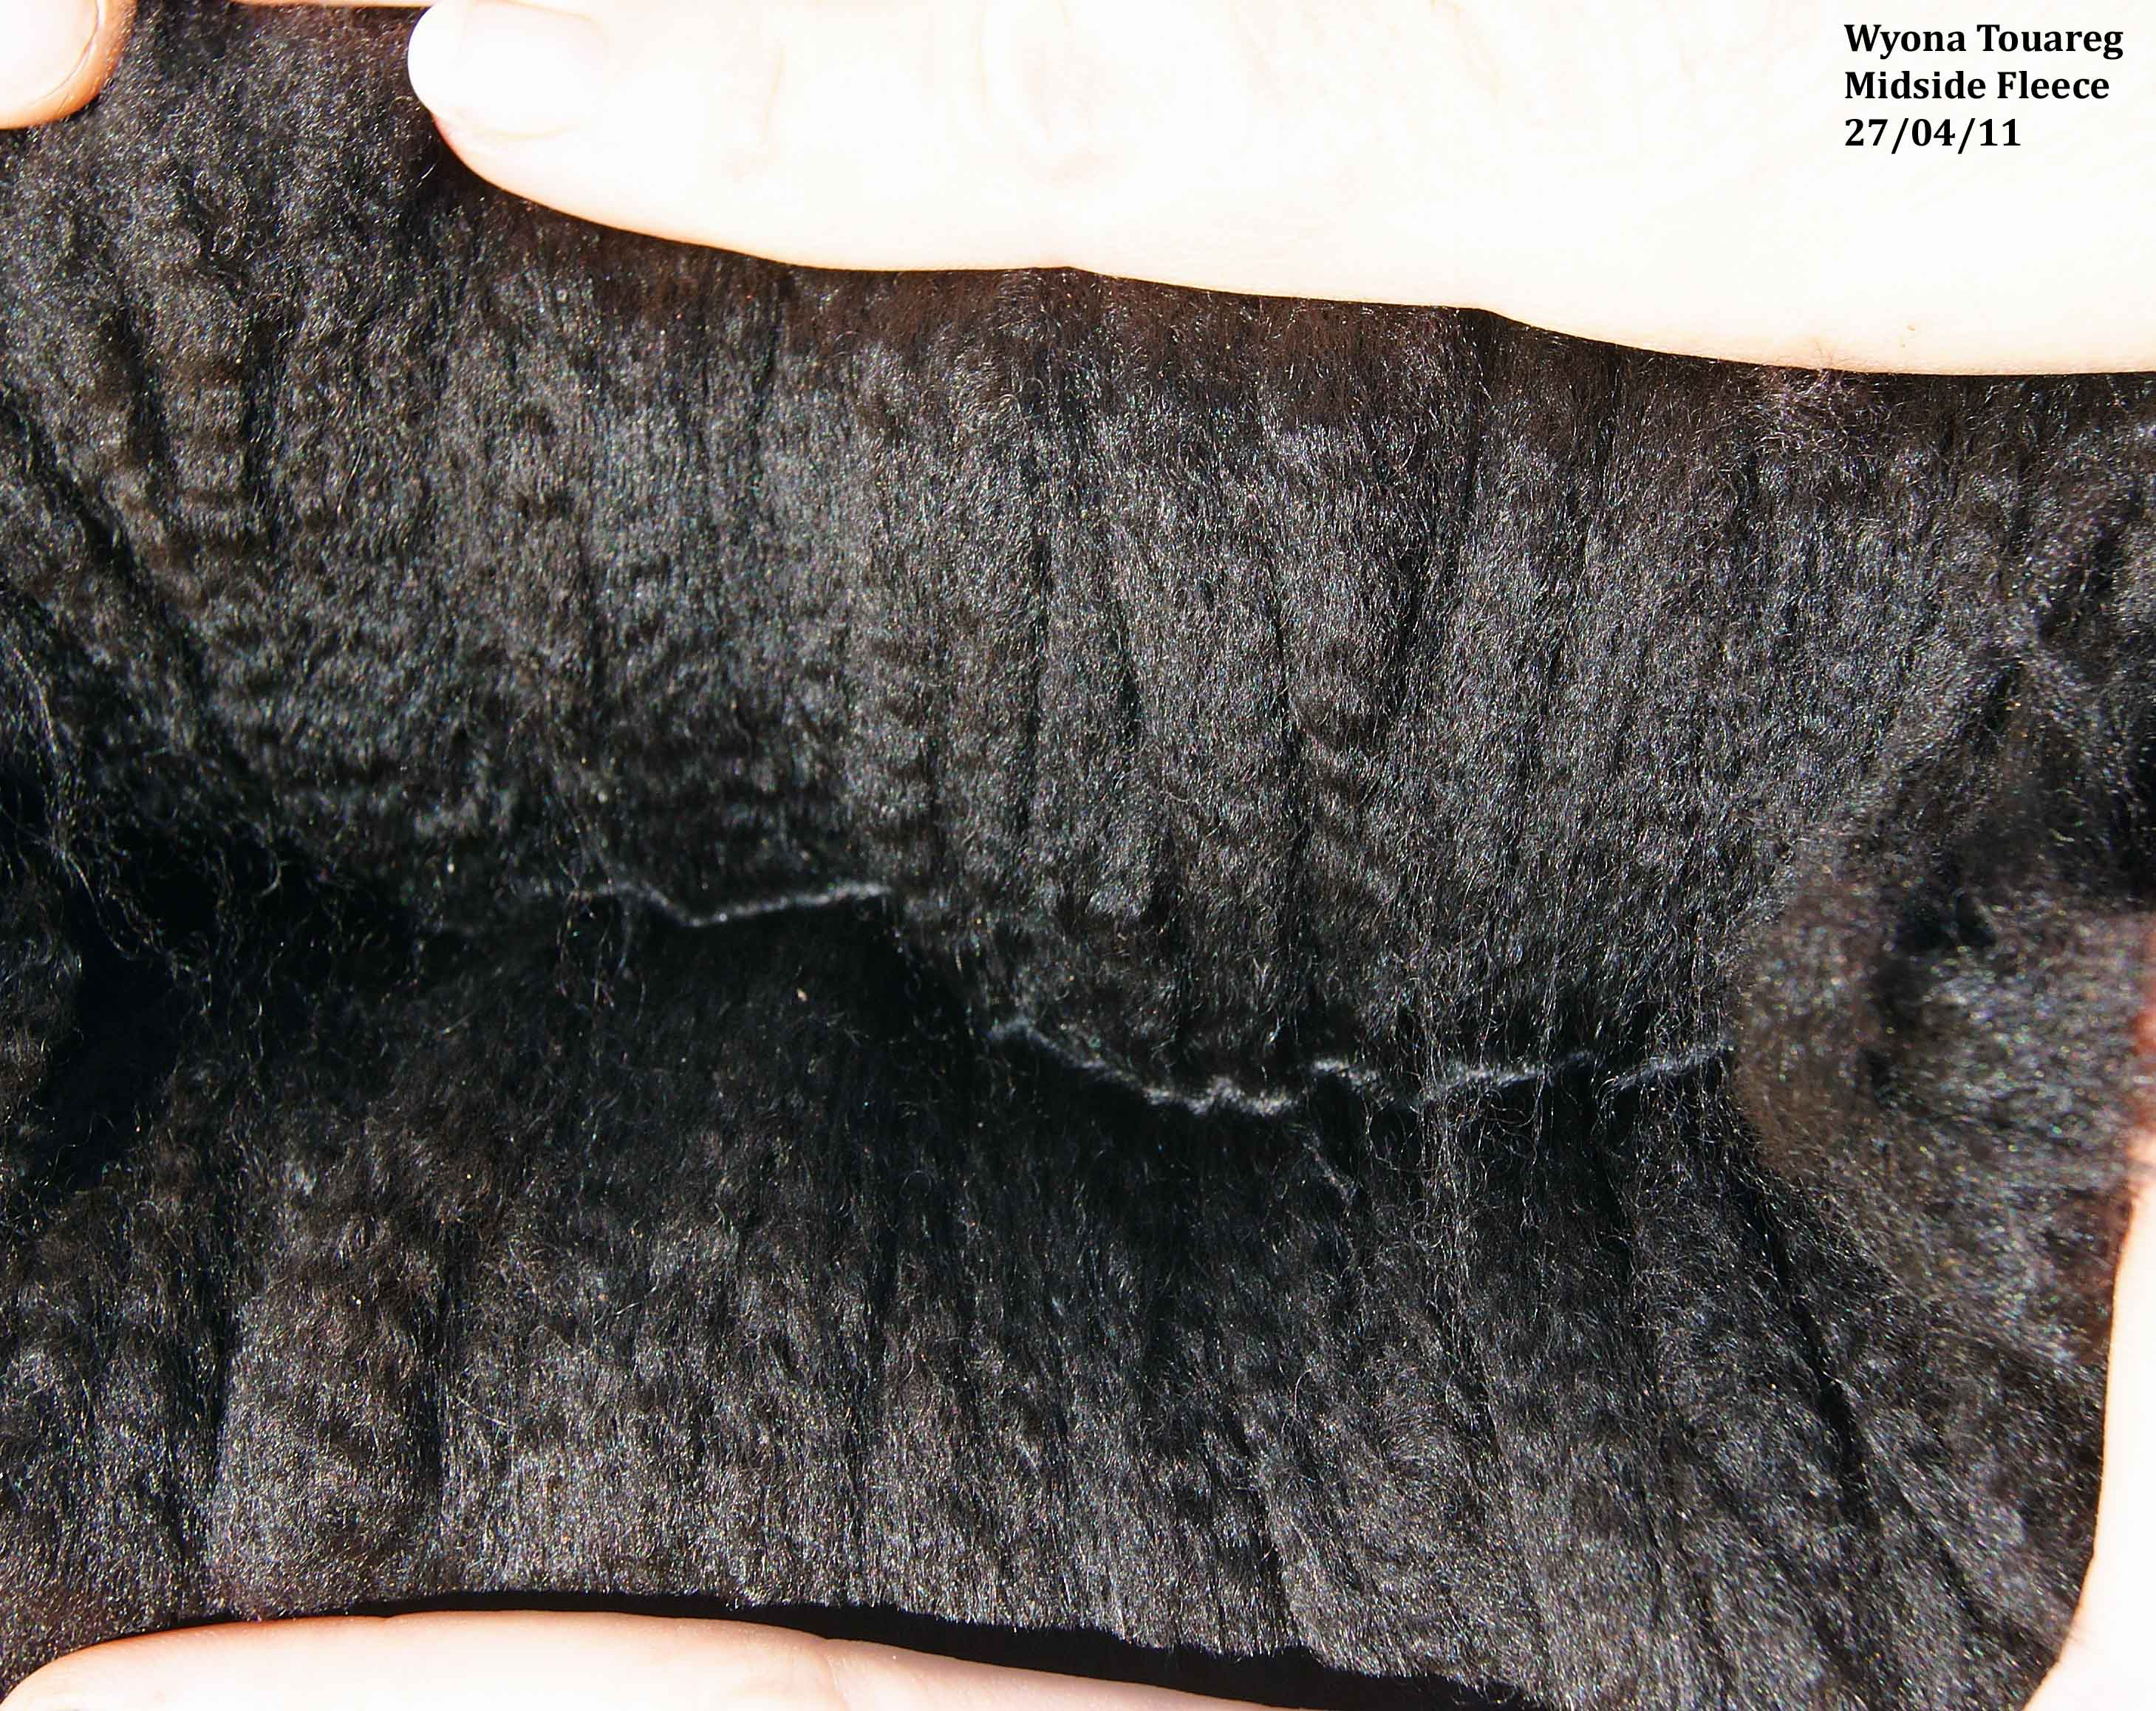 Photo of WYONA TOUAREG's fleece